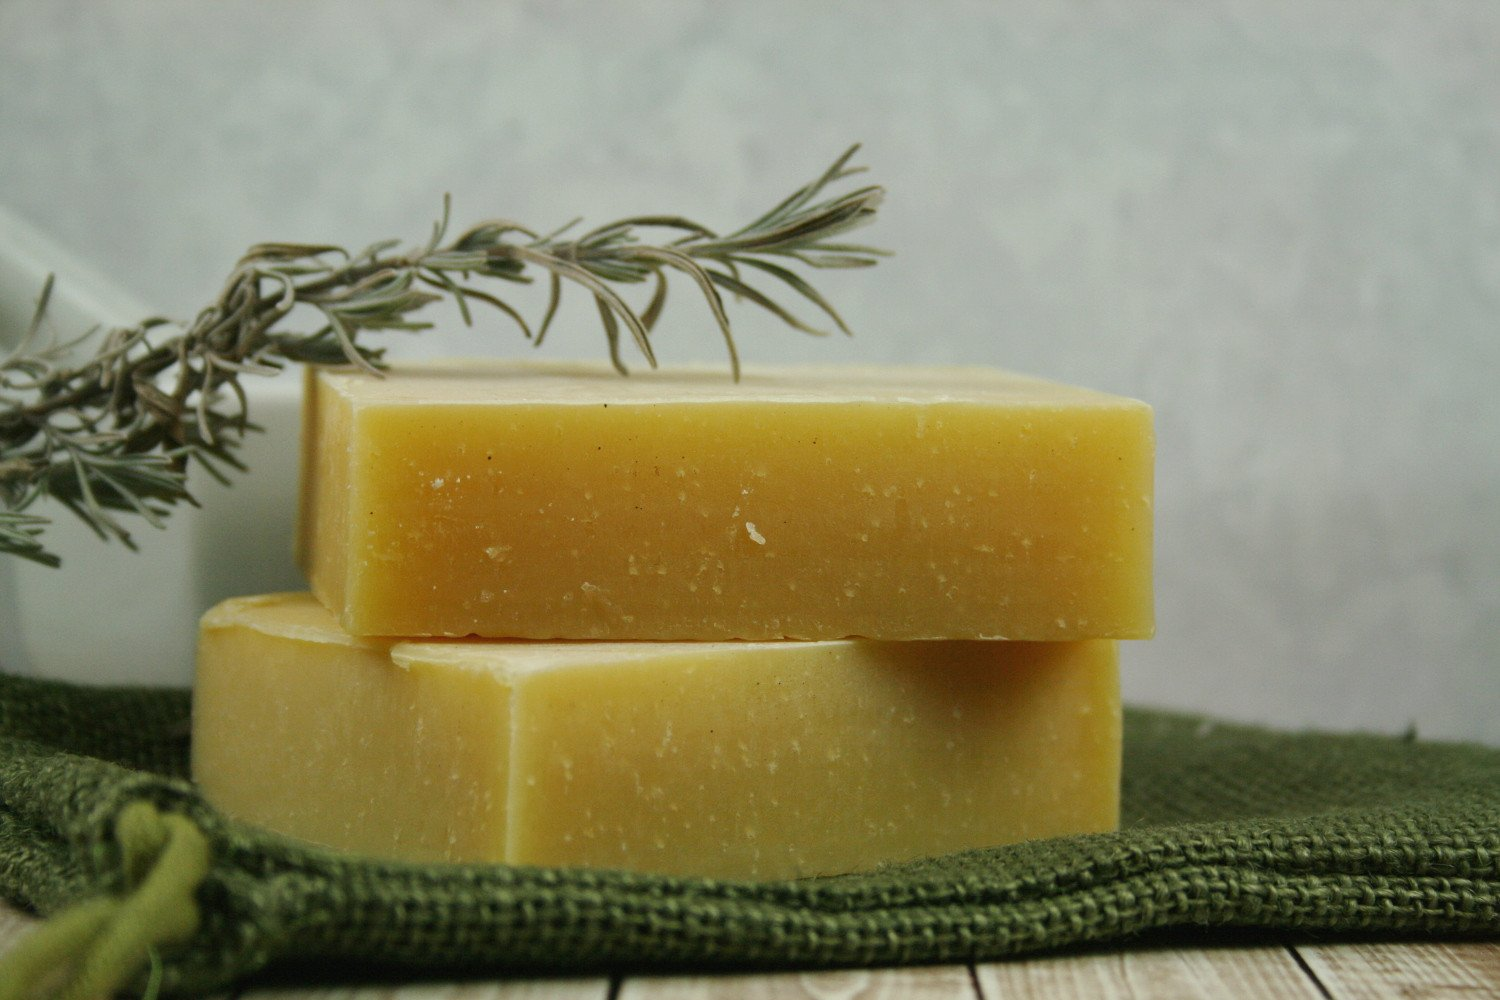 Insect Repellent Soap Bars made with Natural Ingredients